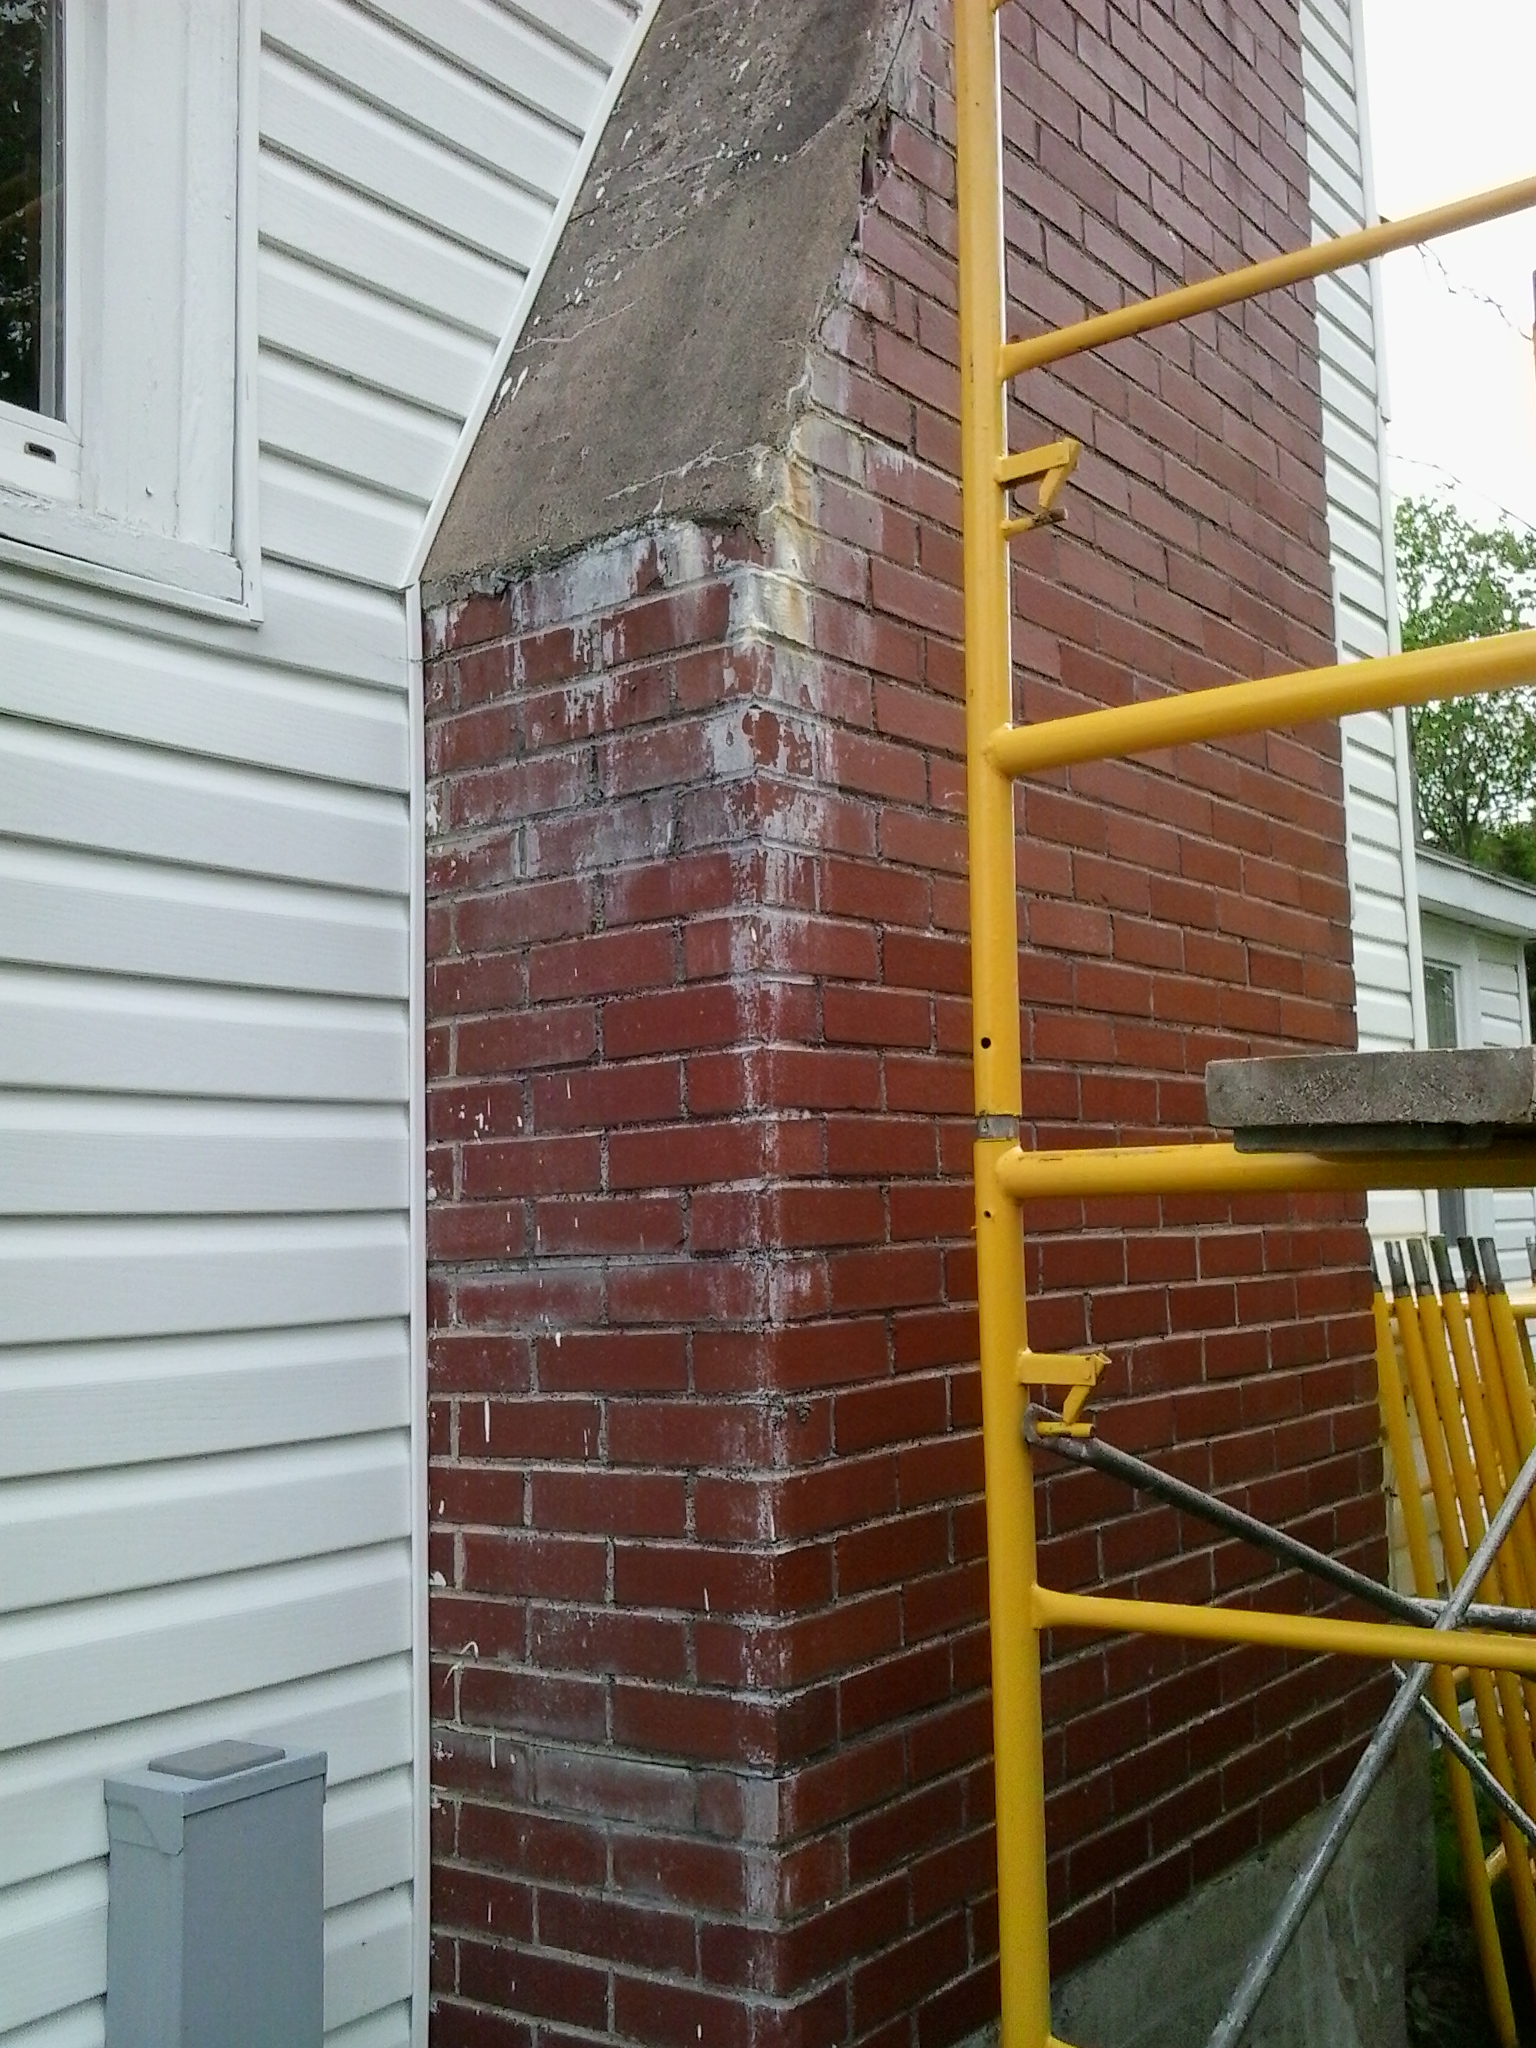 image of chimney-chimney repair services completed in Halifax-Dartmouth Regional Municipality, NS by Pro Chimney Services based in Halifax, NS servicing all of the Halifax-Dartmouth Regional Municipality, Bedford, Sackville, Mount Uniacke, Windsor, Hantsport, Wolfville, Kentville, Chester, Mahone Bay, Lunenburg, Bridgewater, Liverpool, Fall River, Wellington, Enfield, Elmsdale, Brookfield, Truro, Musquodoboit Harbour & surrounding areas.